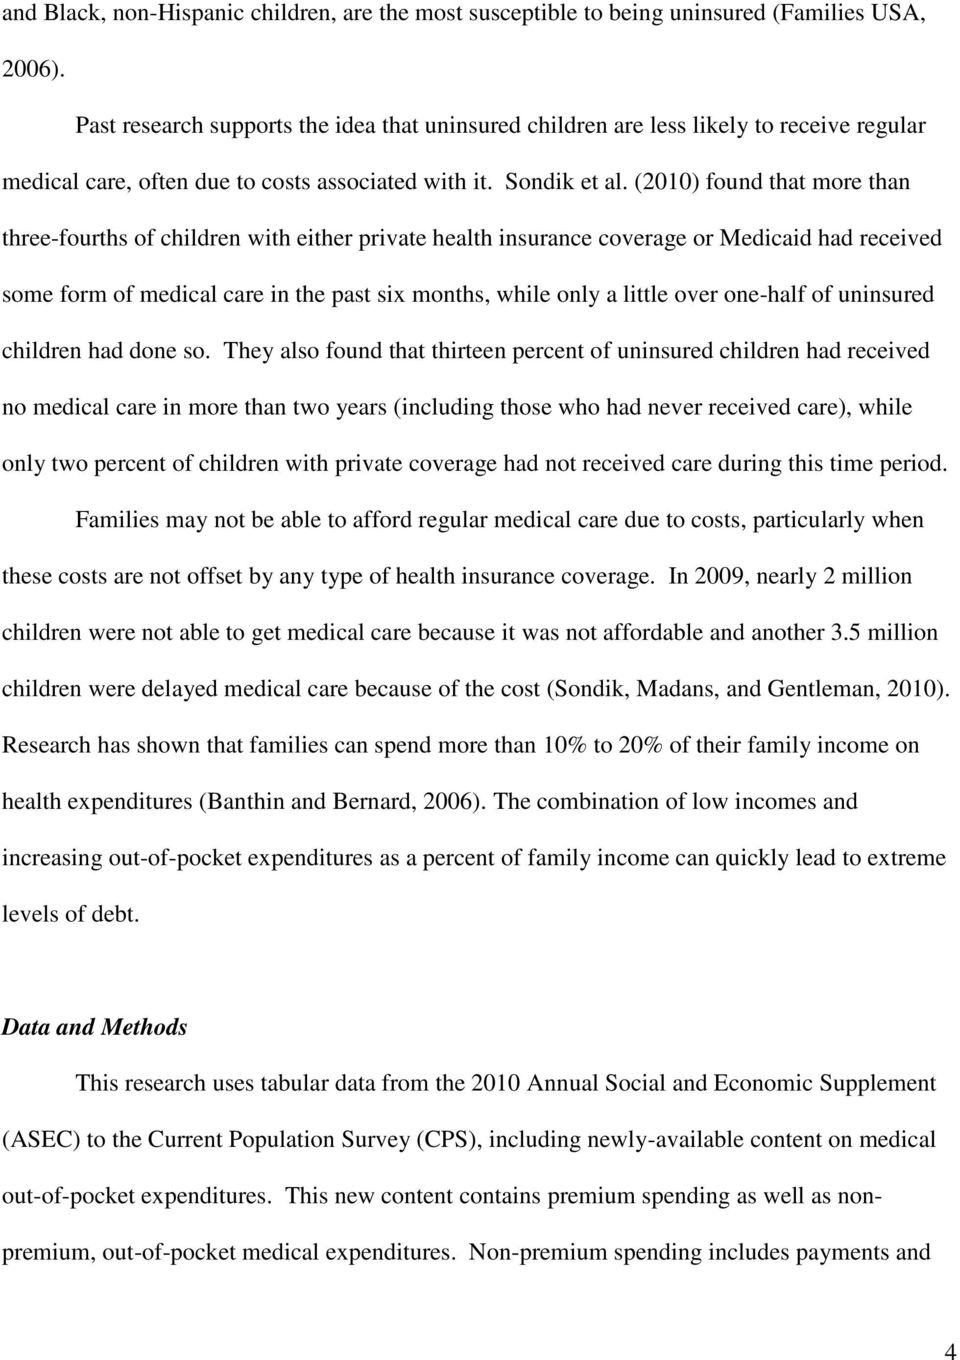 (2010) found that more than three-fourths of children with either private health insurance coverage or Medicaid had received some form of medical care in the past six months, while only a little over